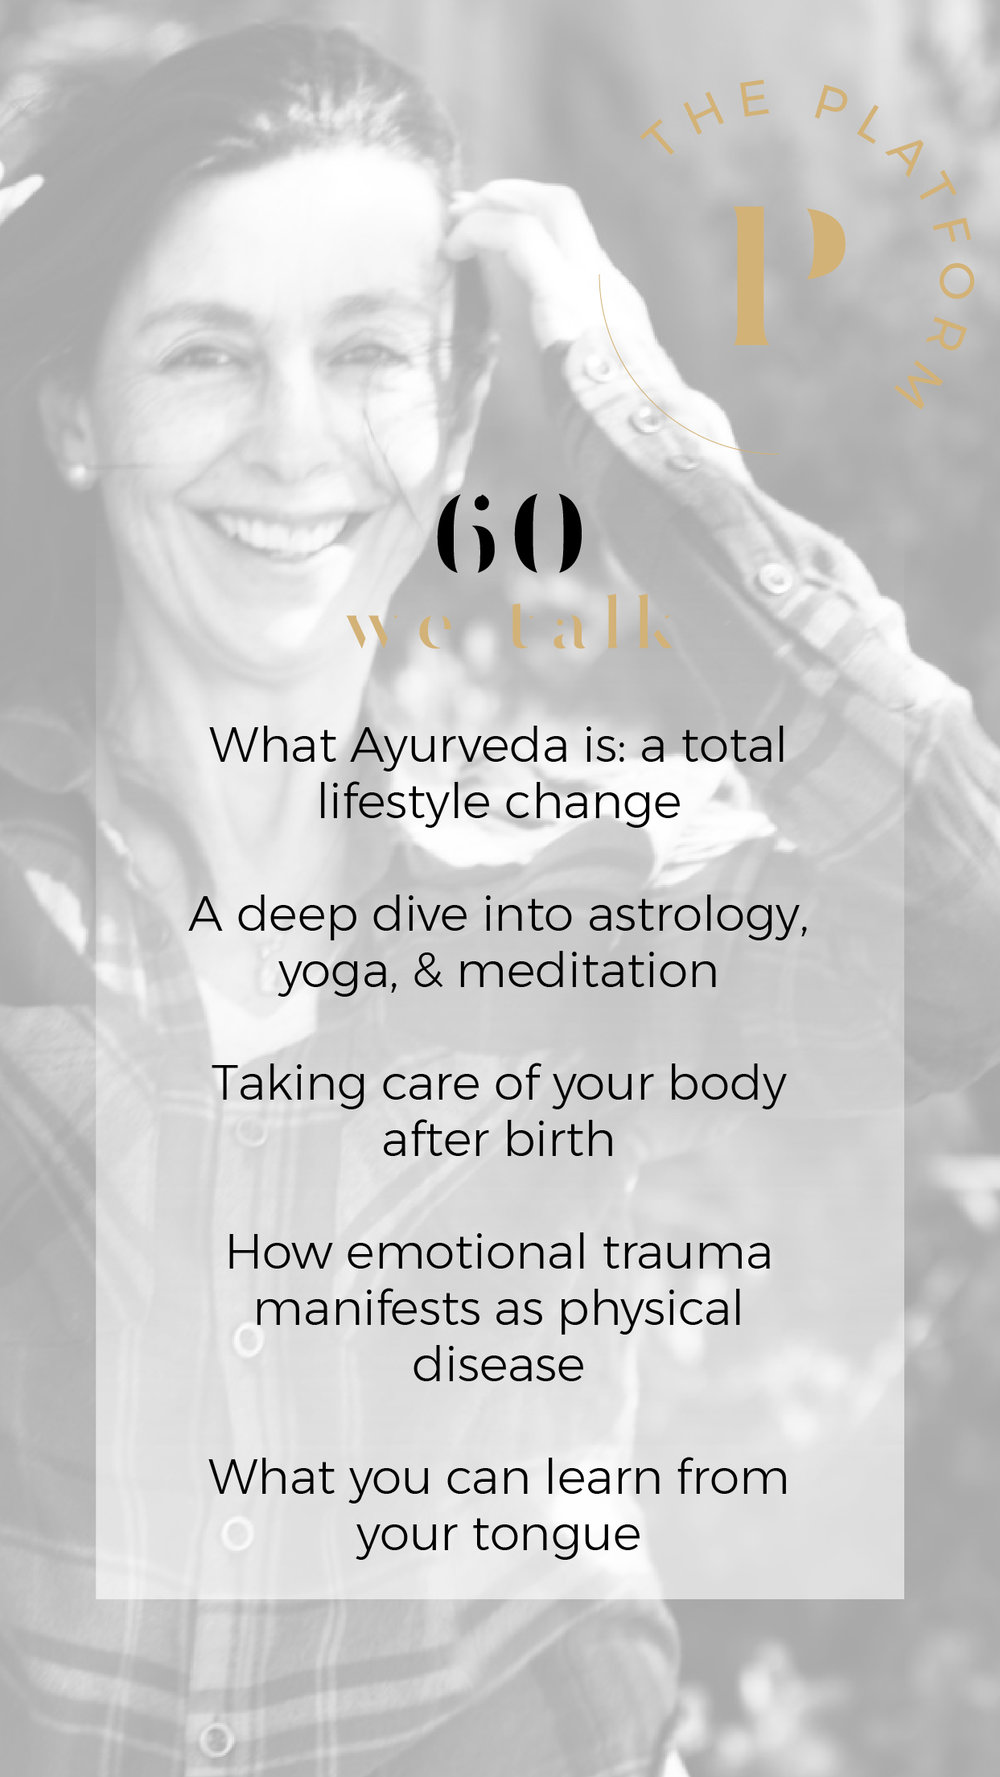 what is ayurveda, lifestyle change, astrology, yoga, meditation, surya spa, martha soffer, the platform podcast with kelli tennant, health and wellness, naturopathic healing, healing journey, india, food is medicine, panchakarma, healing experience of massage with oils, enemas, healthy natural diets, herbs, cooling treatments, ancient wisdom